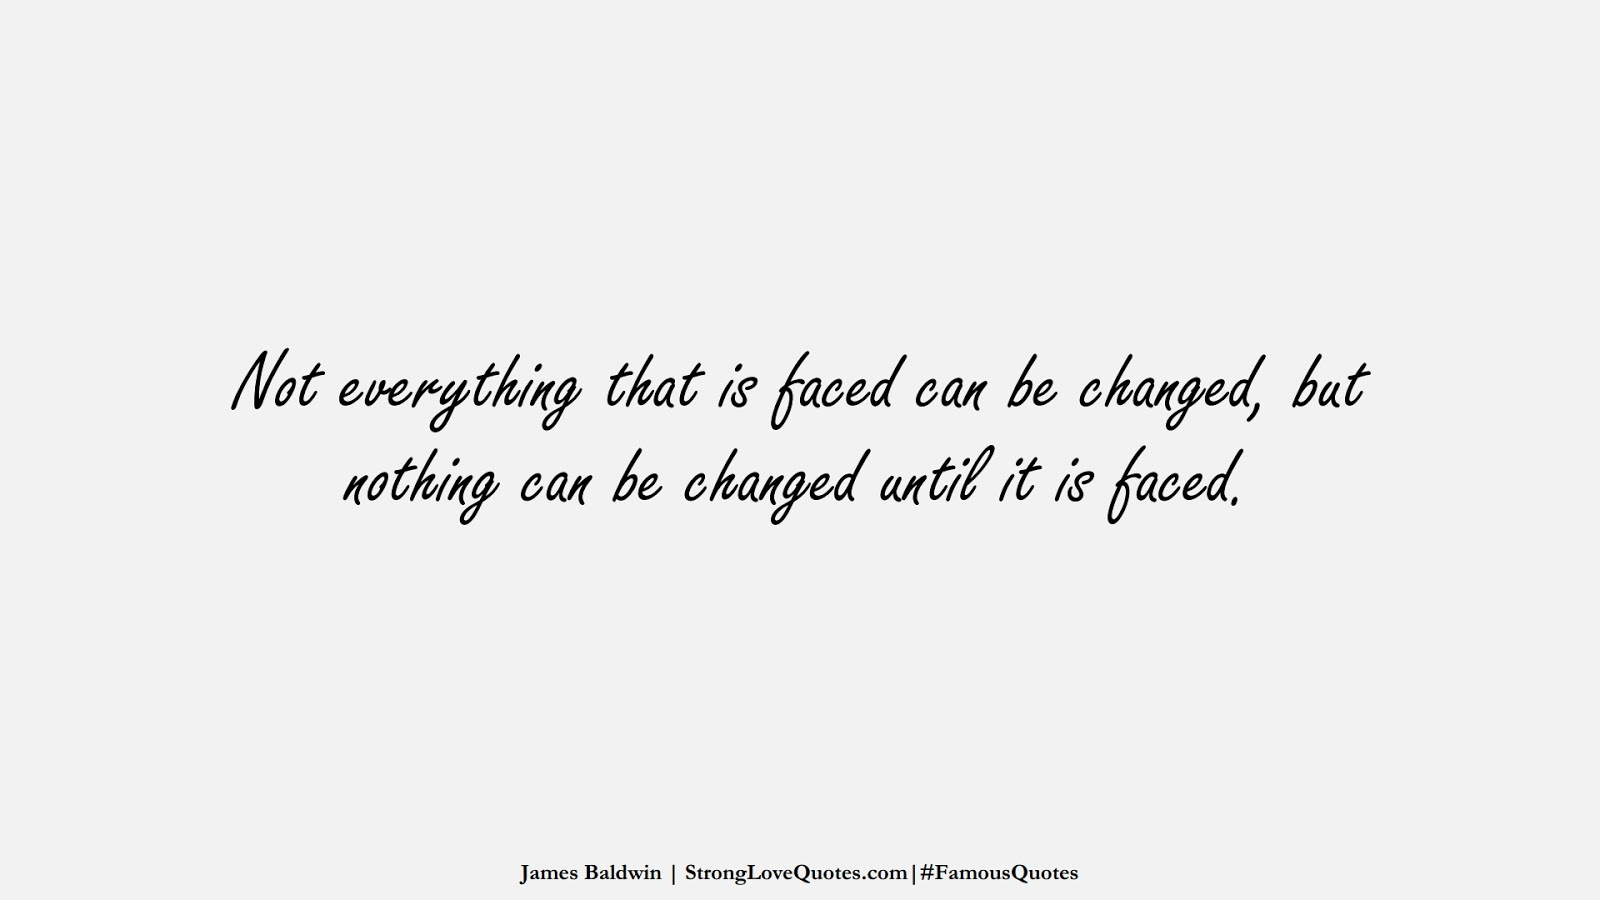 Not everything that is faced can be changed, but nothing can be changed until it is faced. (James Baldwin);  #FamousQuotes